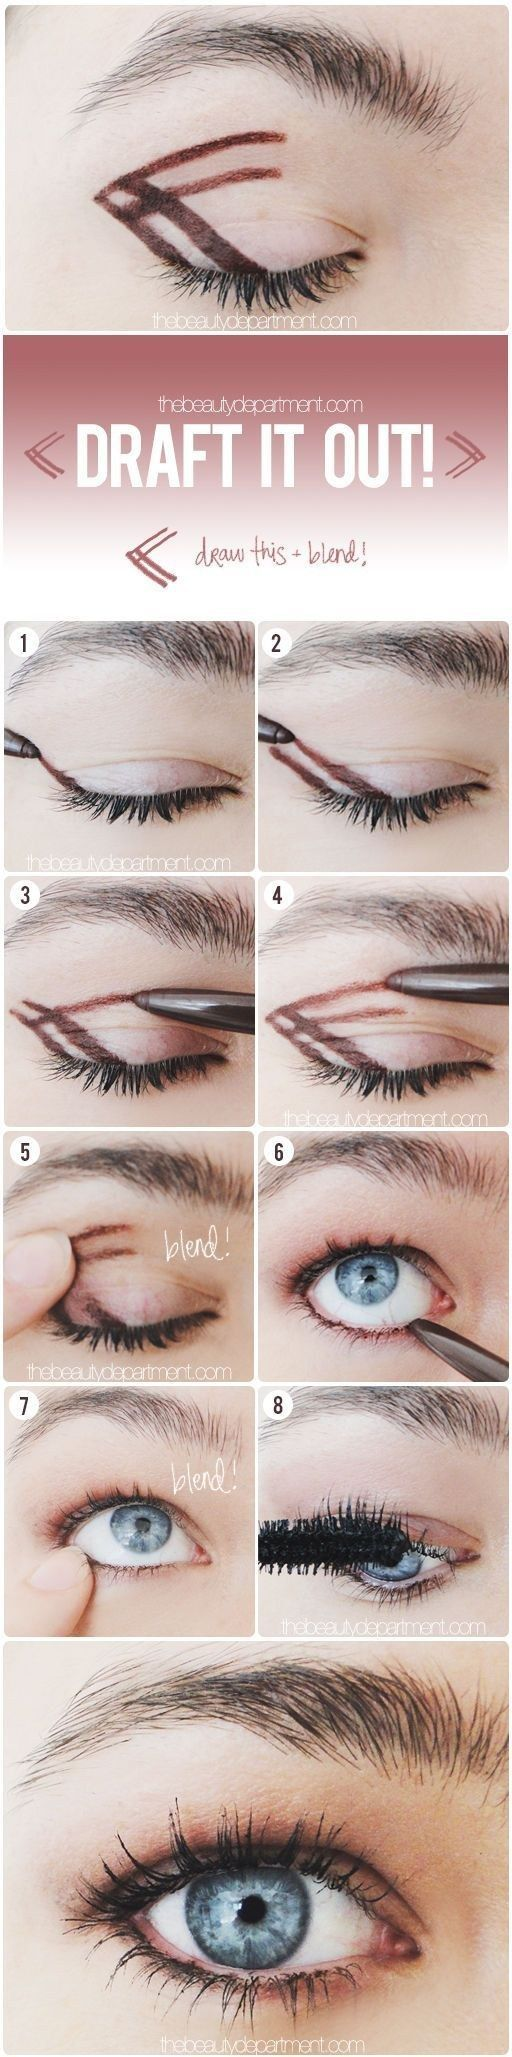 Use this drawing technique to get the easiest, most natural smoky eye ever. | 41 Life-Saving Beauty Hacks Every Girl Should Have In Her Arsenal: